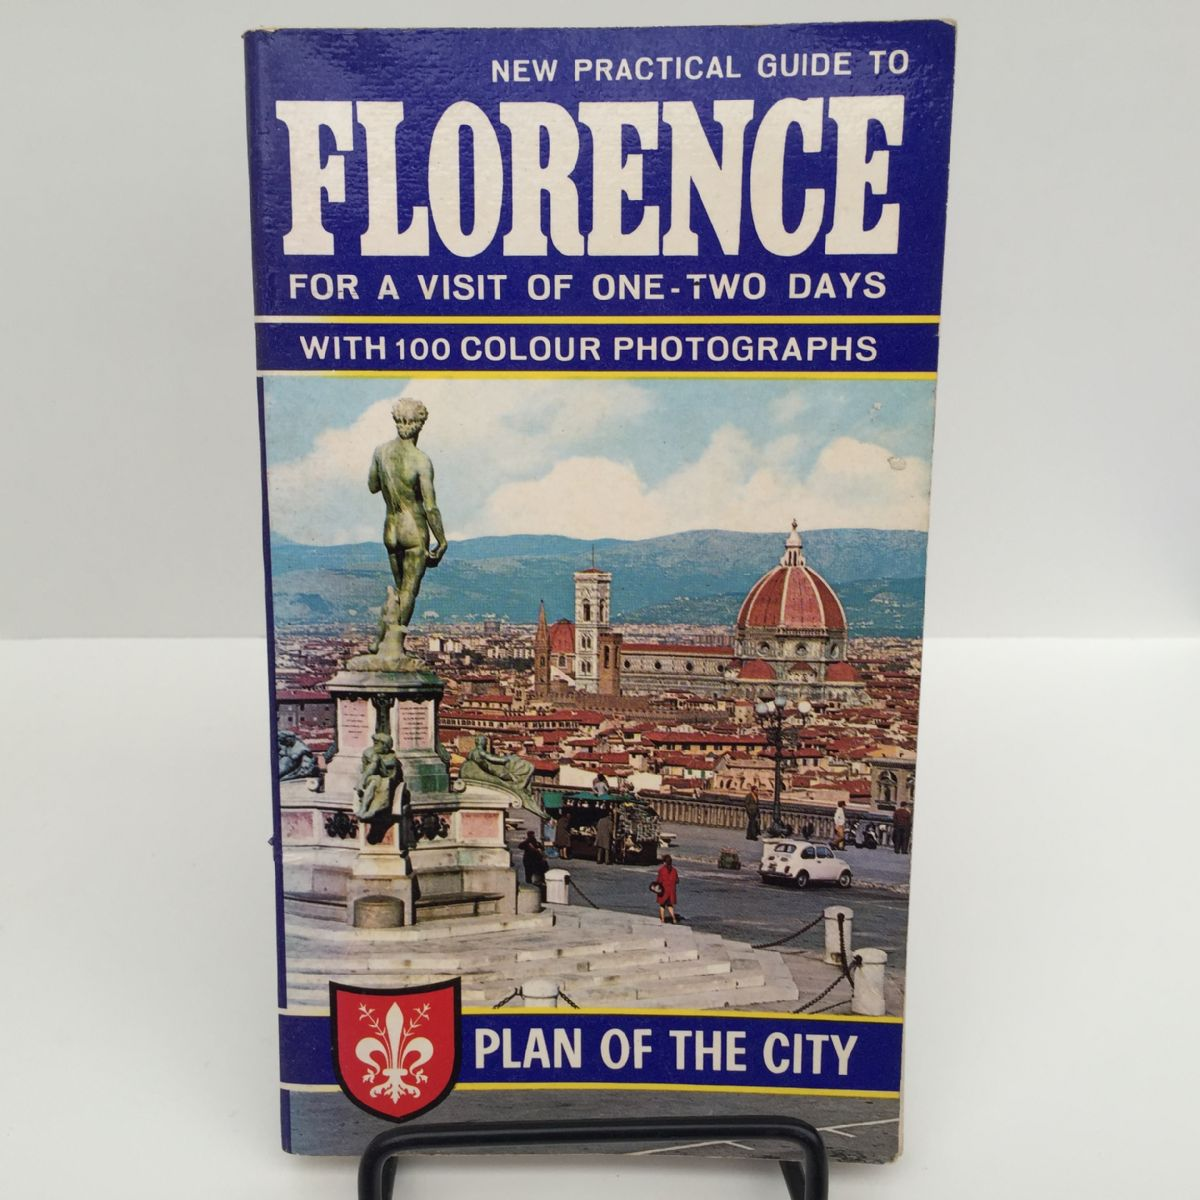 Florence: New Practical Guide To